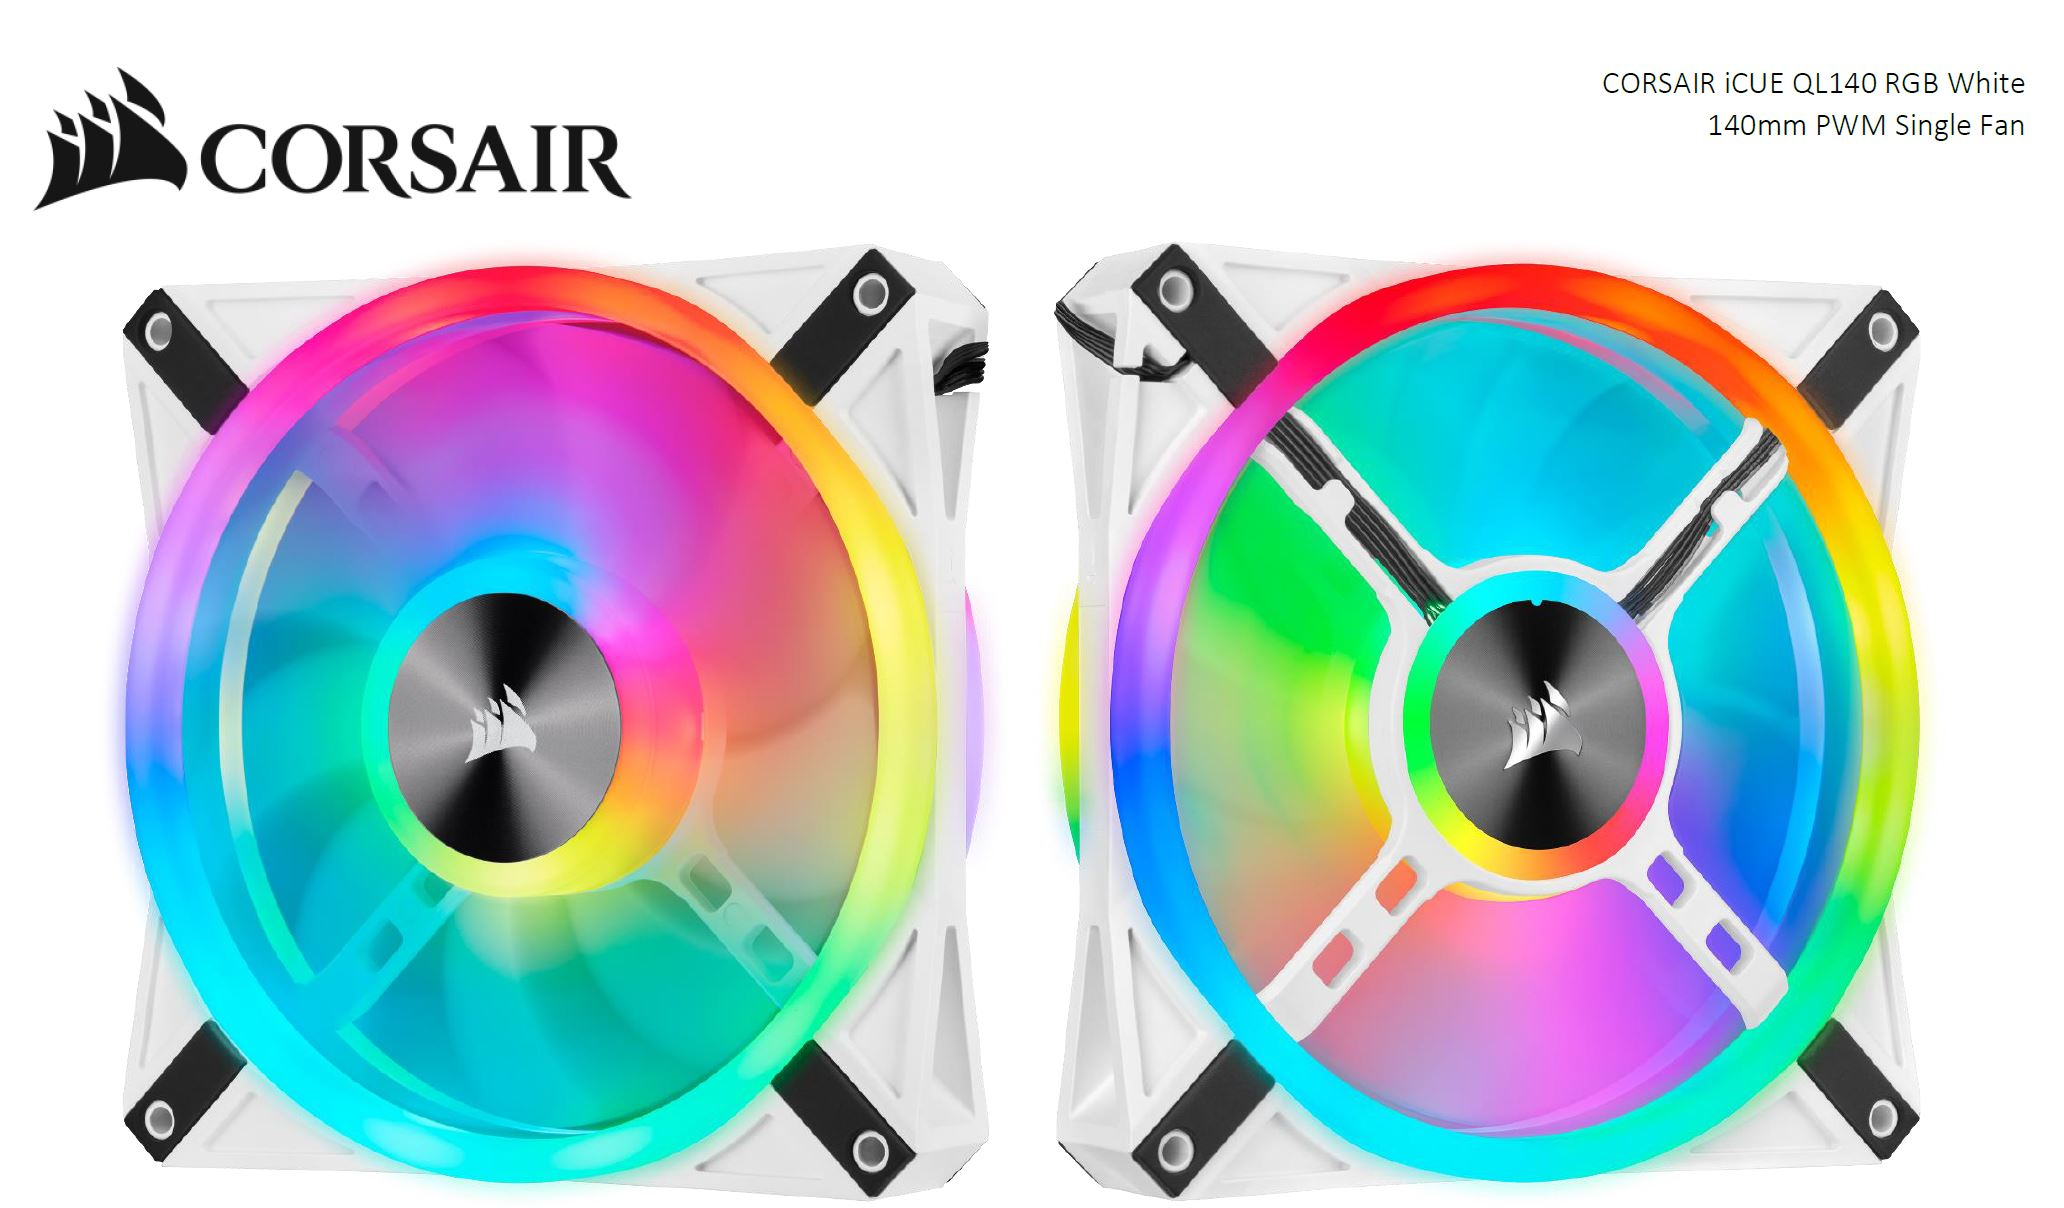 Corsair QL140 RGB White, ICUE, 140mm RGB LED PWM Fan 26dBA, 50.2 CFM, Single Pack